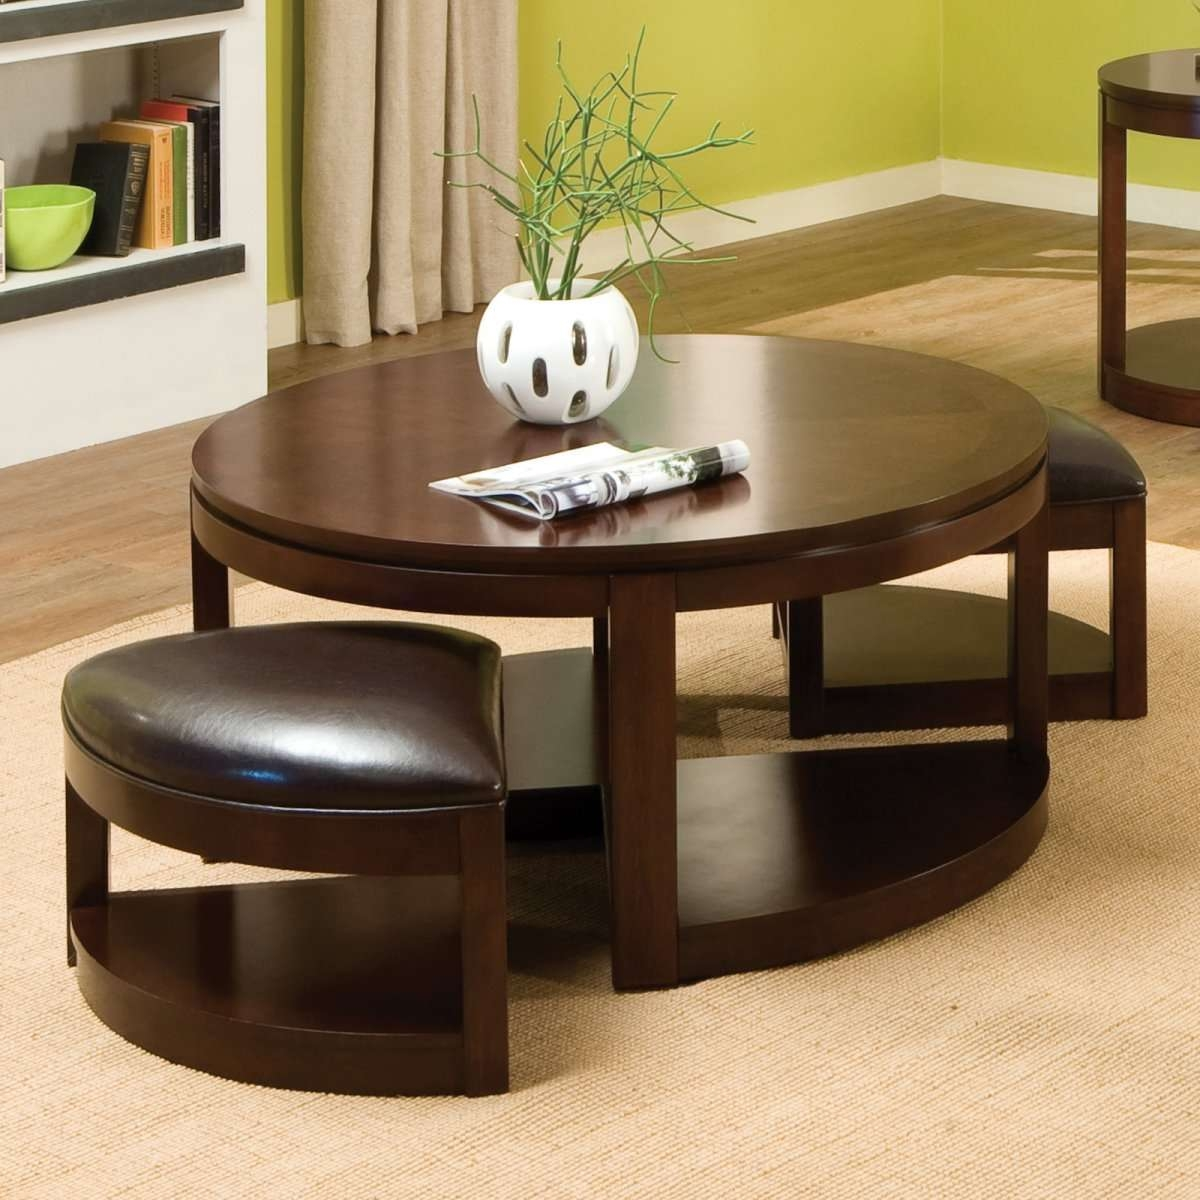 Most Recent Round Coffee Tables With Storages Intended For Round Coffee Table: Captivating Round Ottoman Coffee Table With (View 12 of 20)